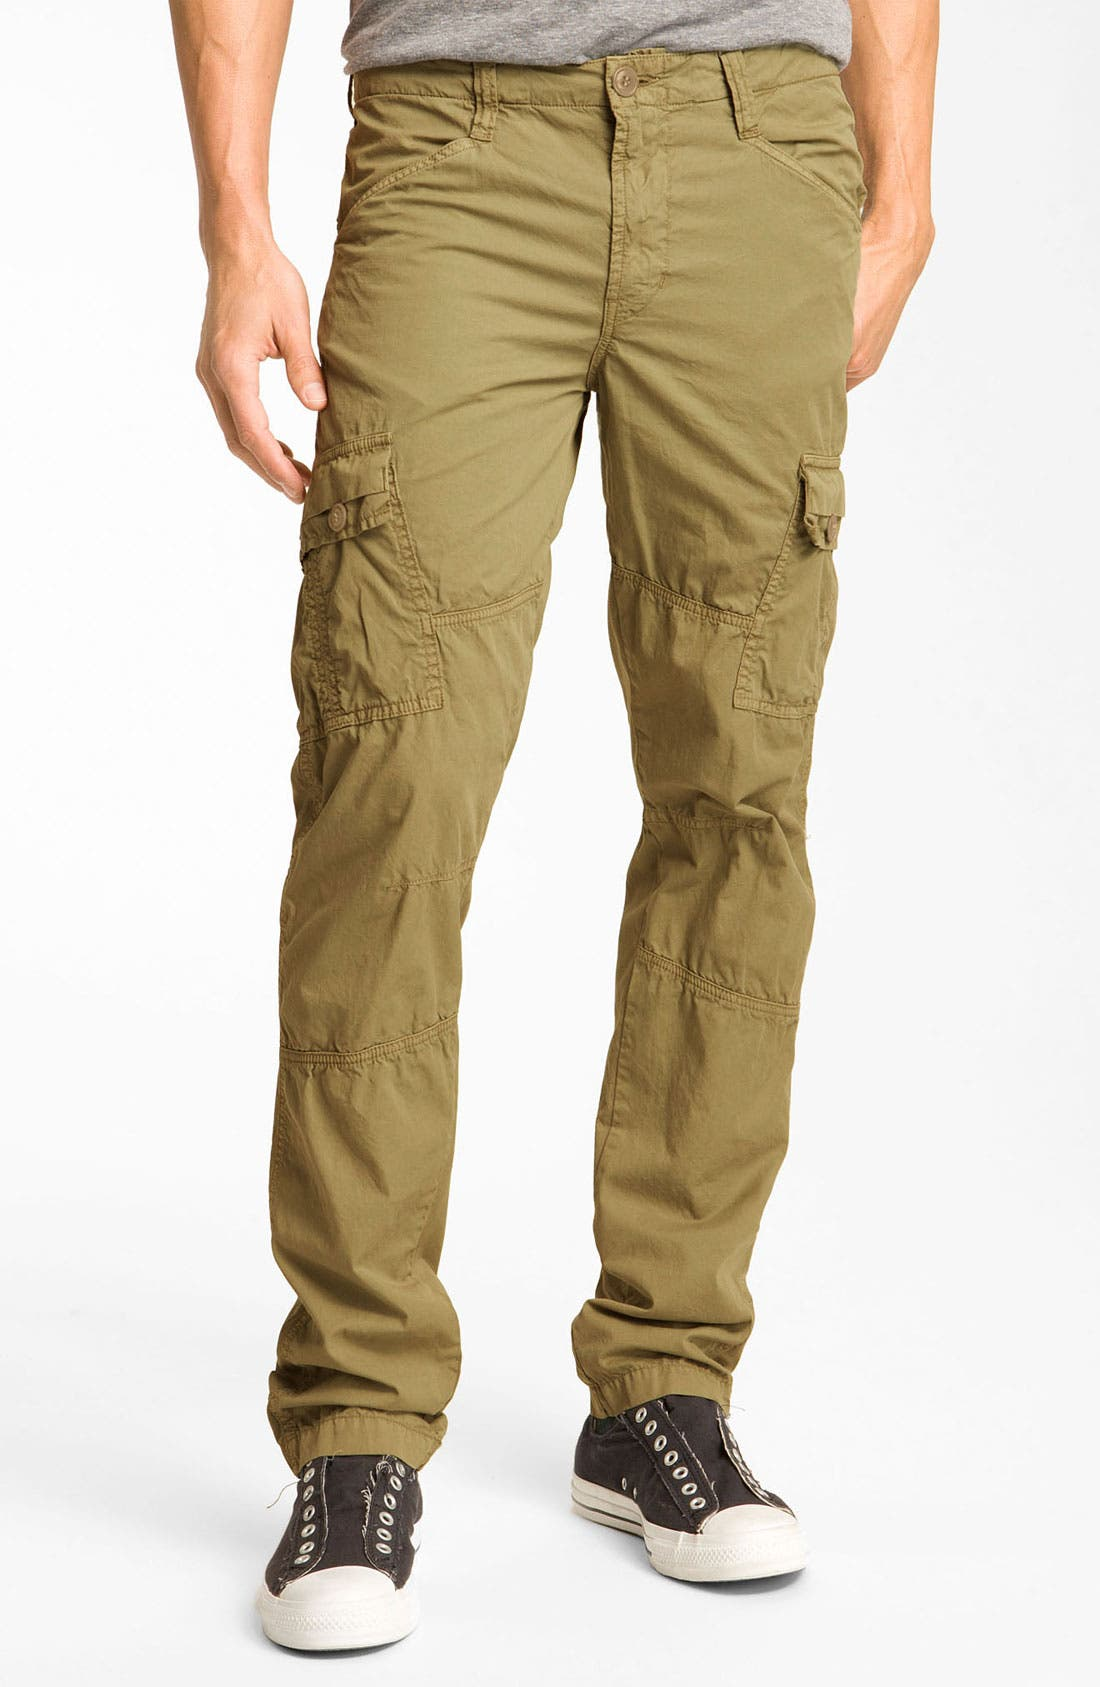 Alternate Image 1 Selected - J Brand 'Trooper' Slim Lightweight Cargo Pants